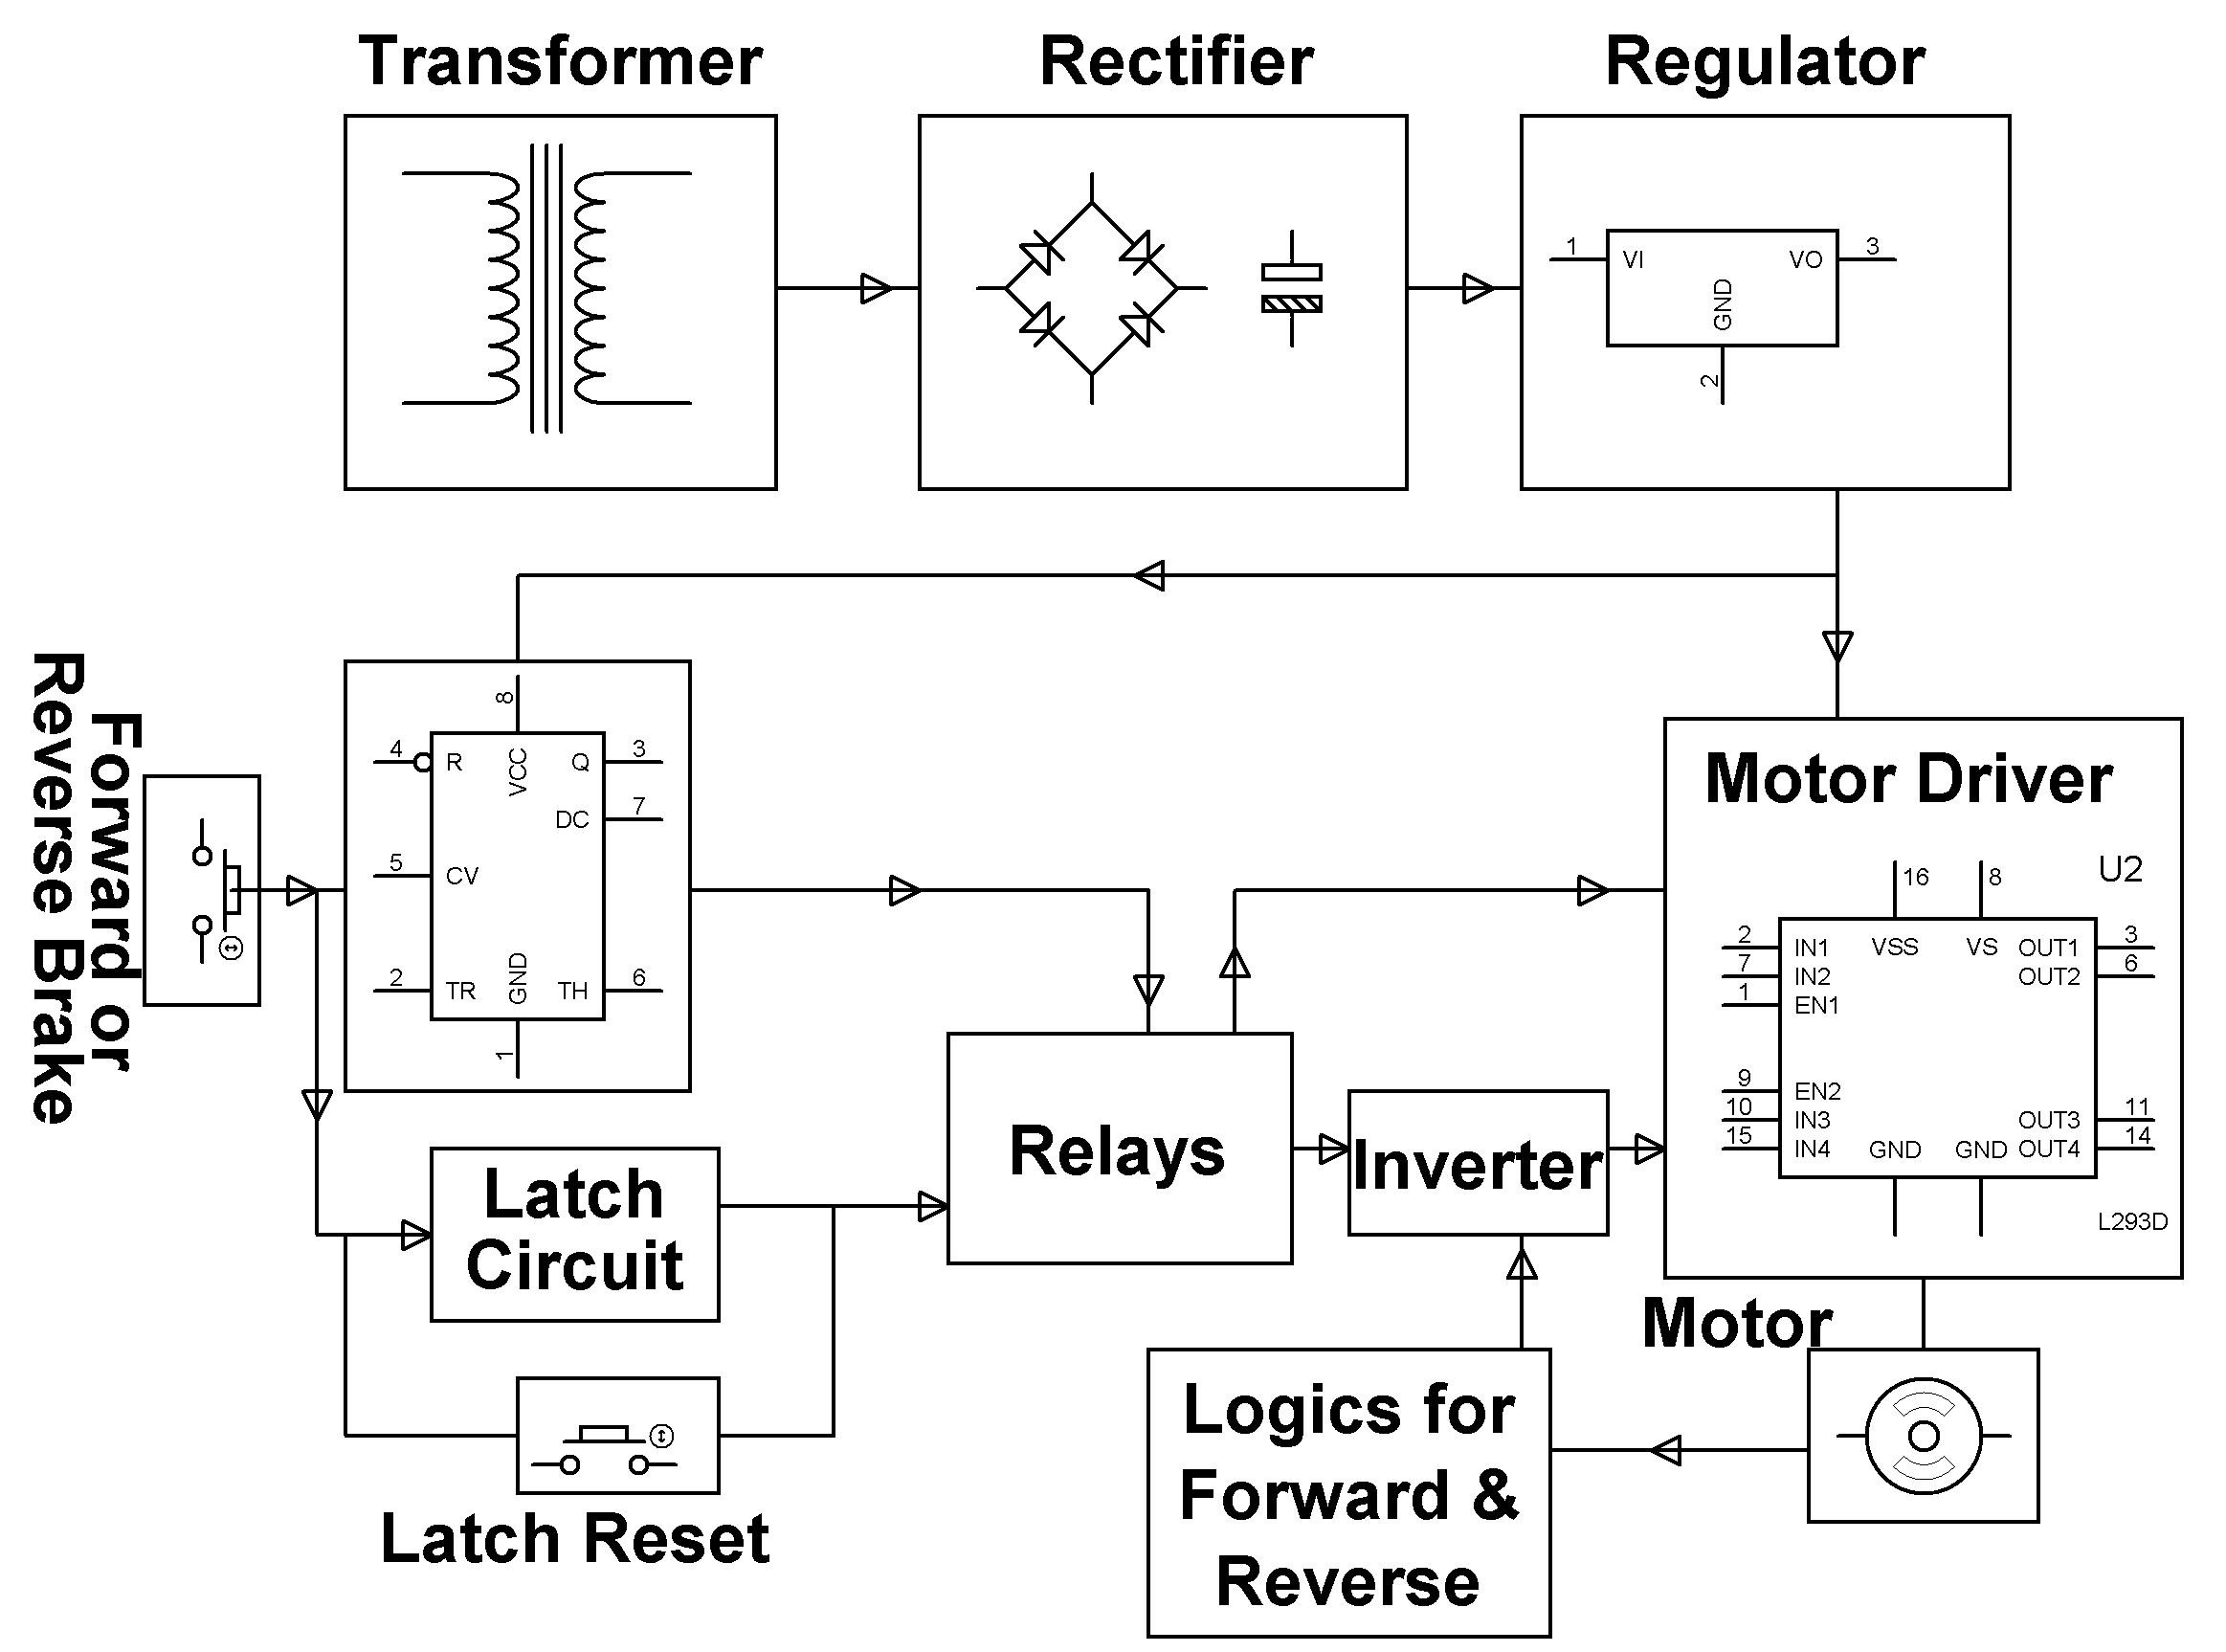 Basic Motor Diagram Microprocessor Projects Wiring Diagram Ponents Of Basic Motor Diagram